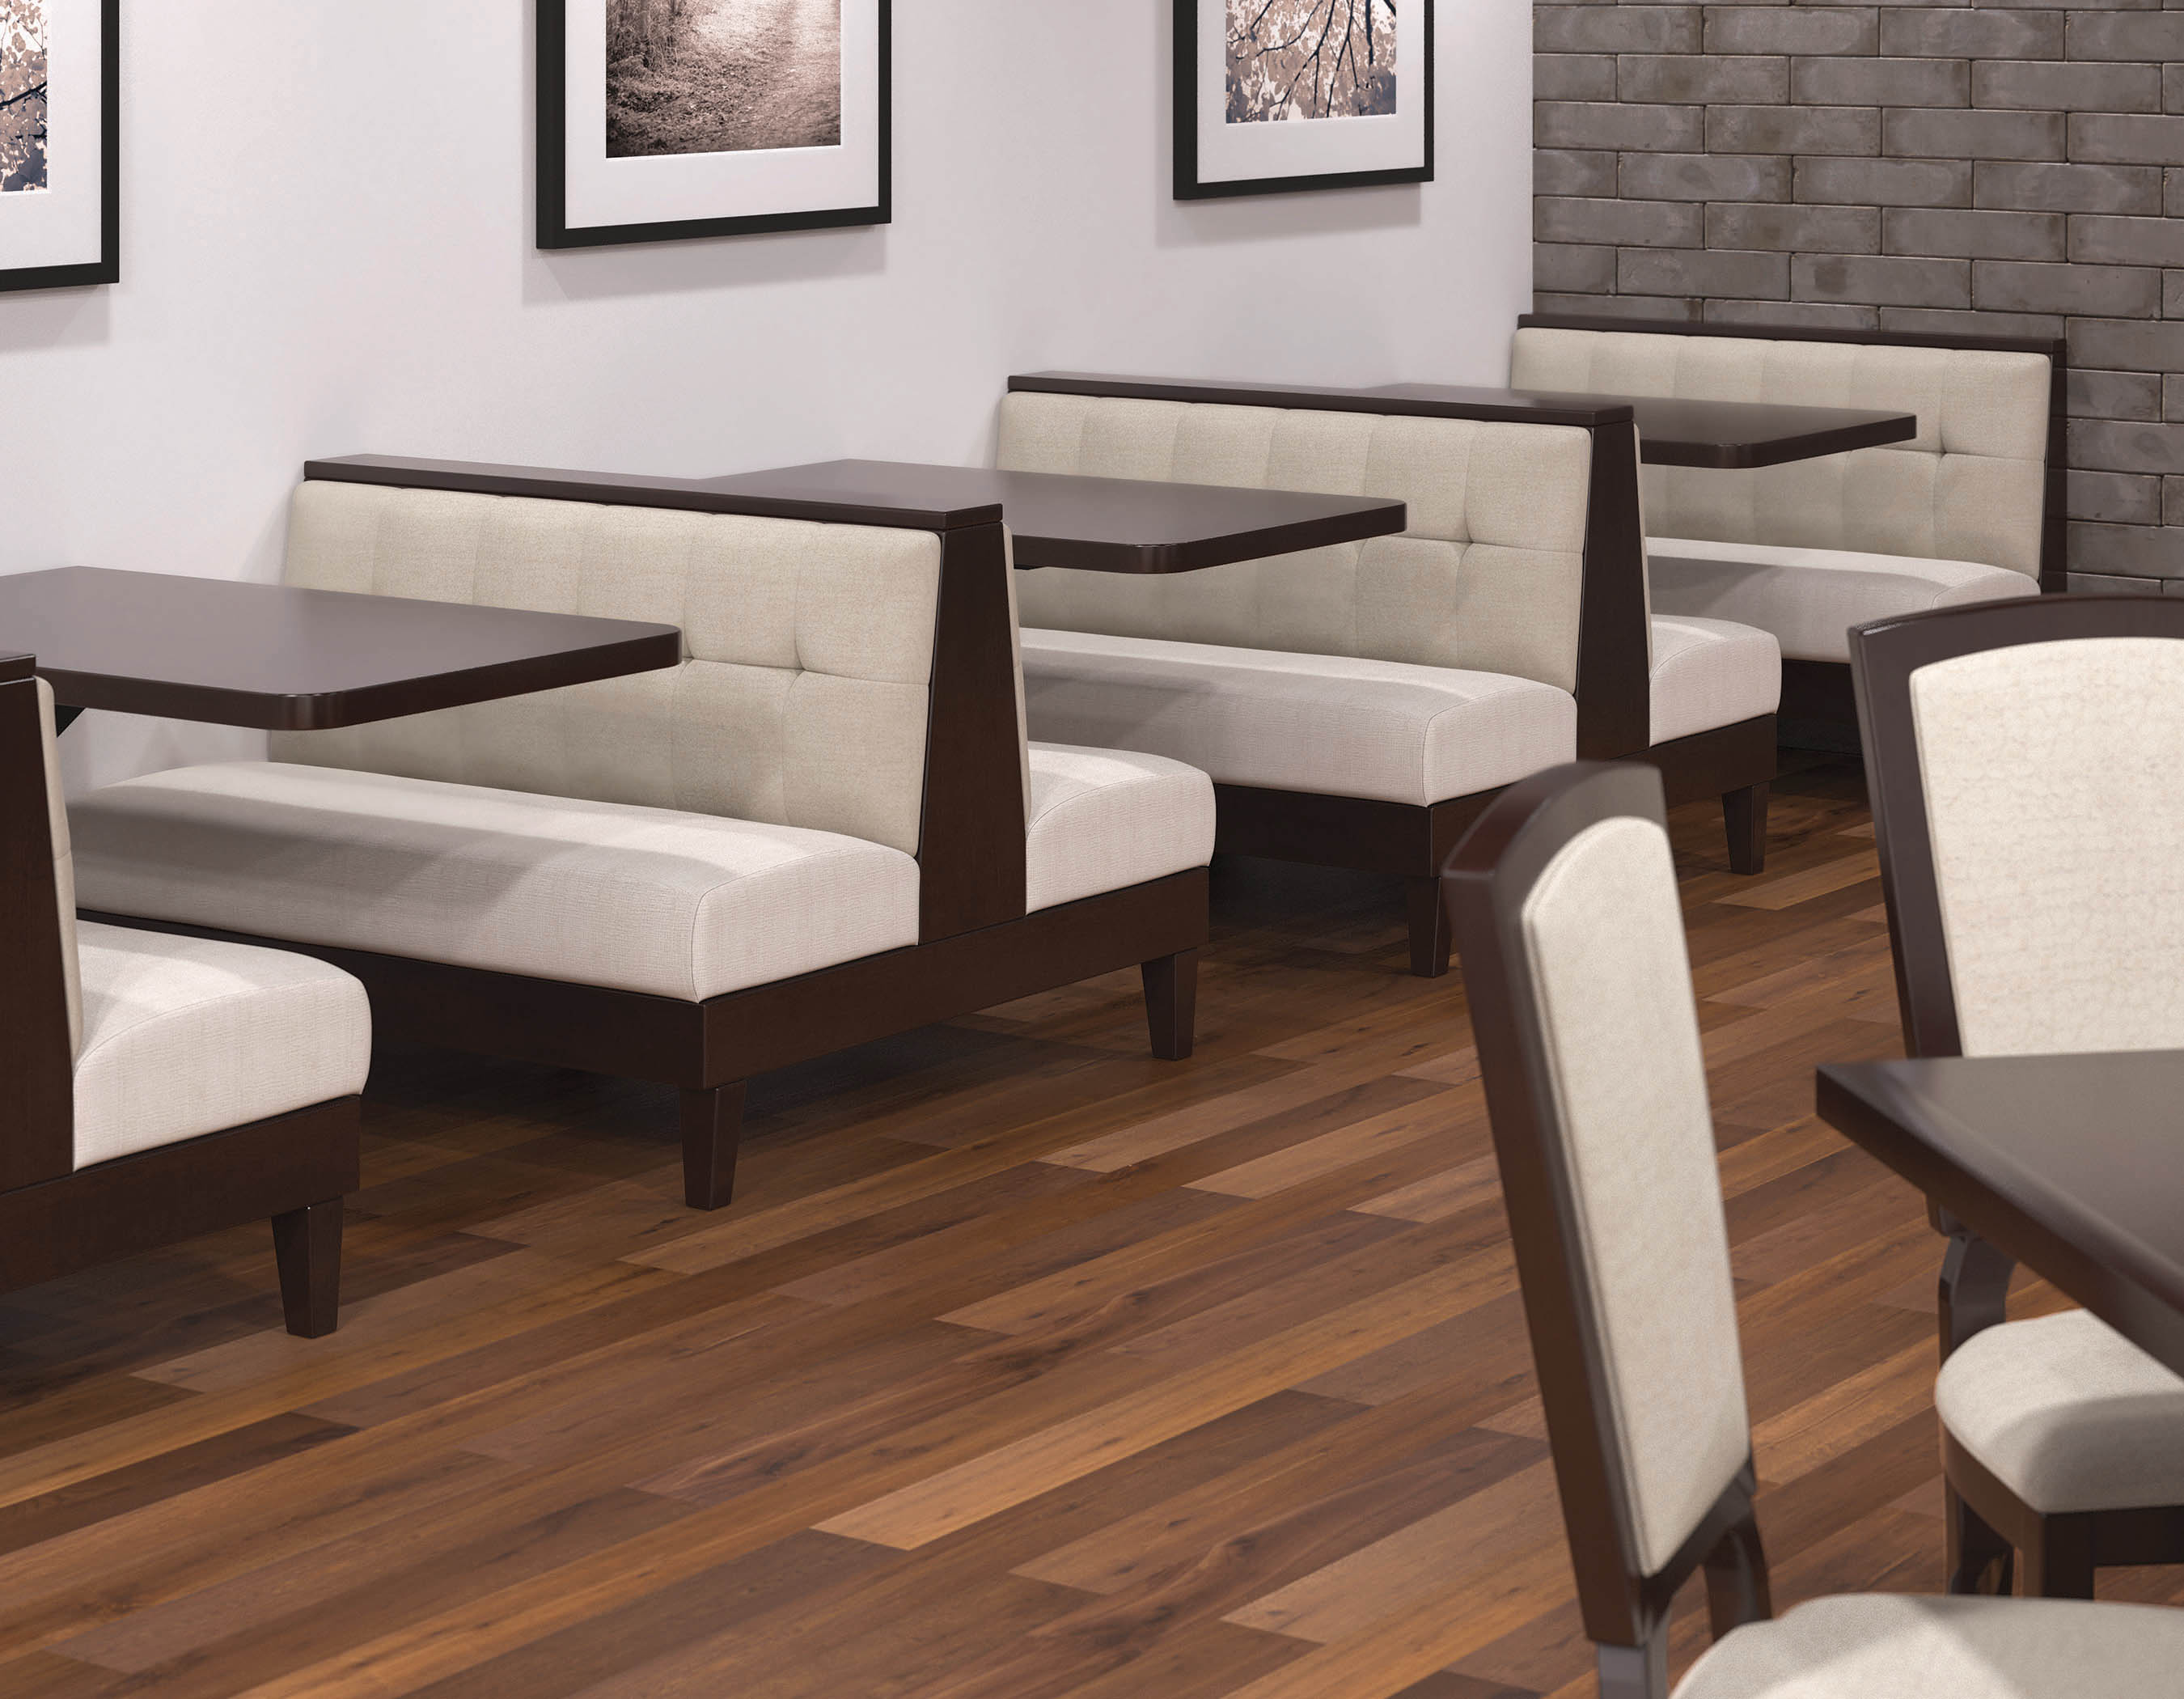 Restaurant Furniture Revit : M booths banquettes